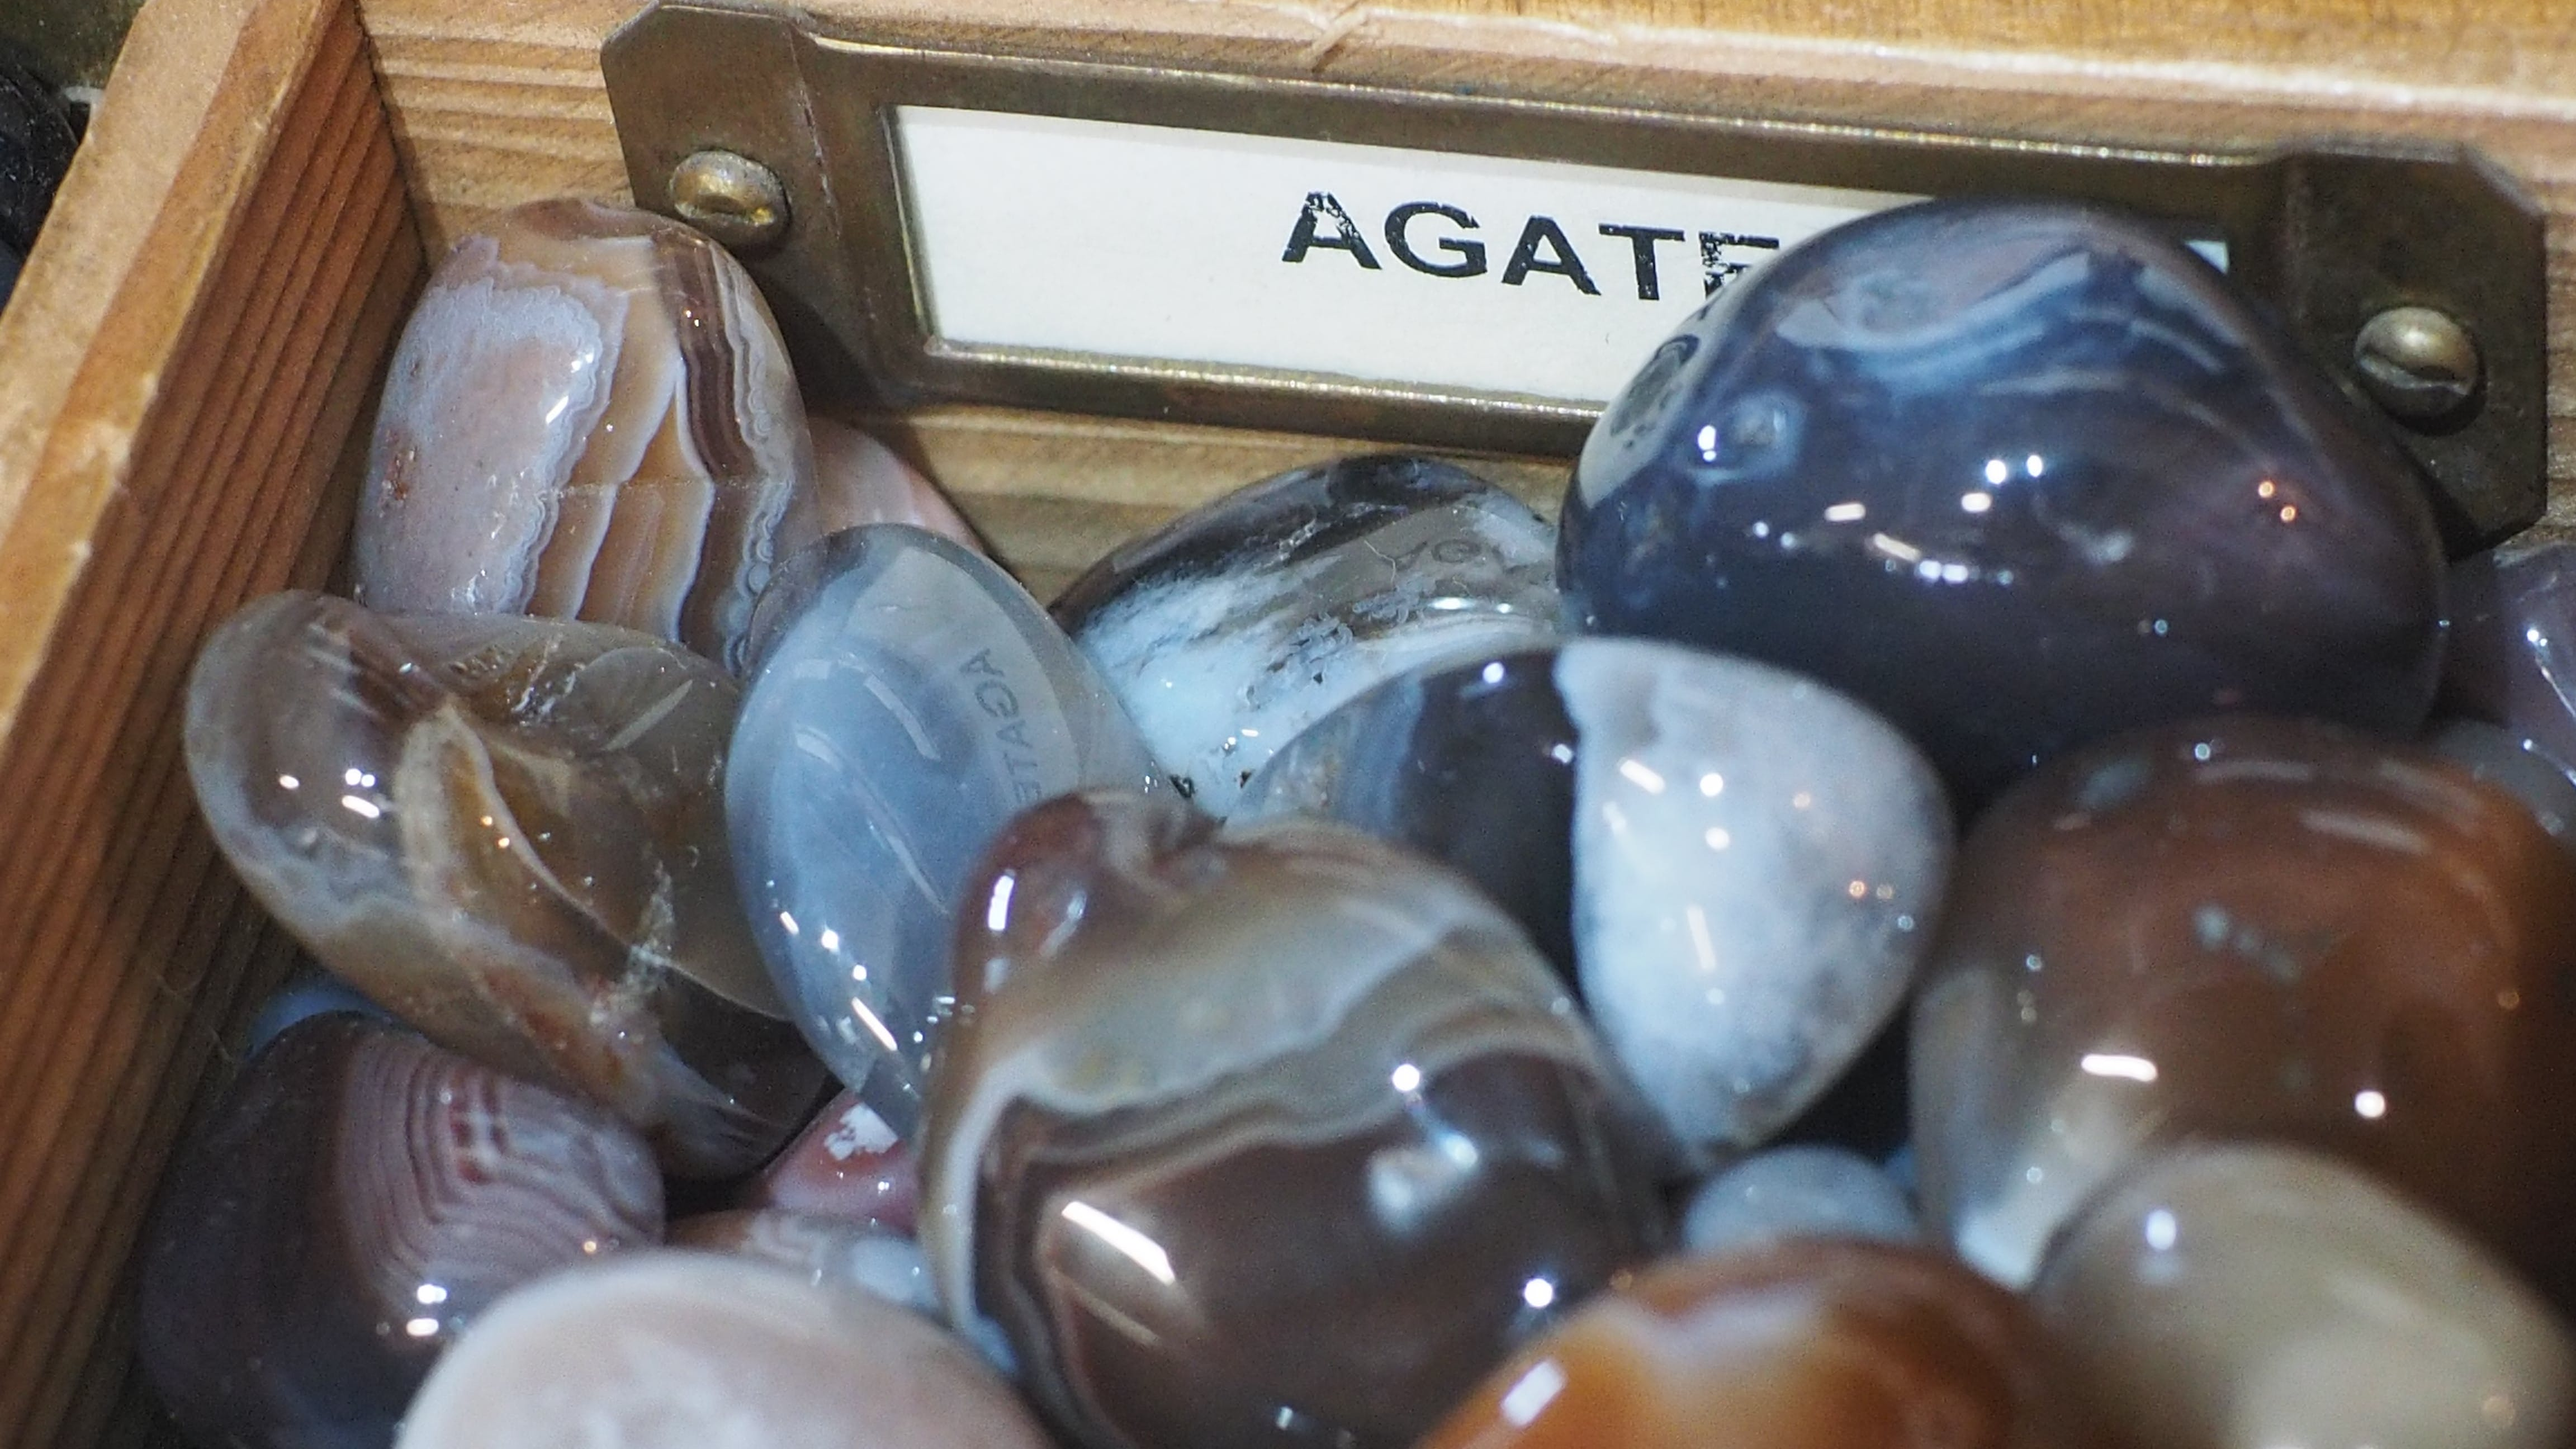 agate, crystal, crystals